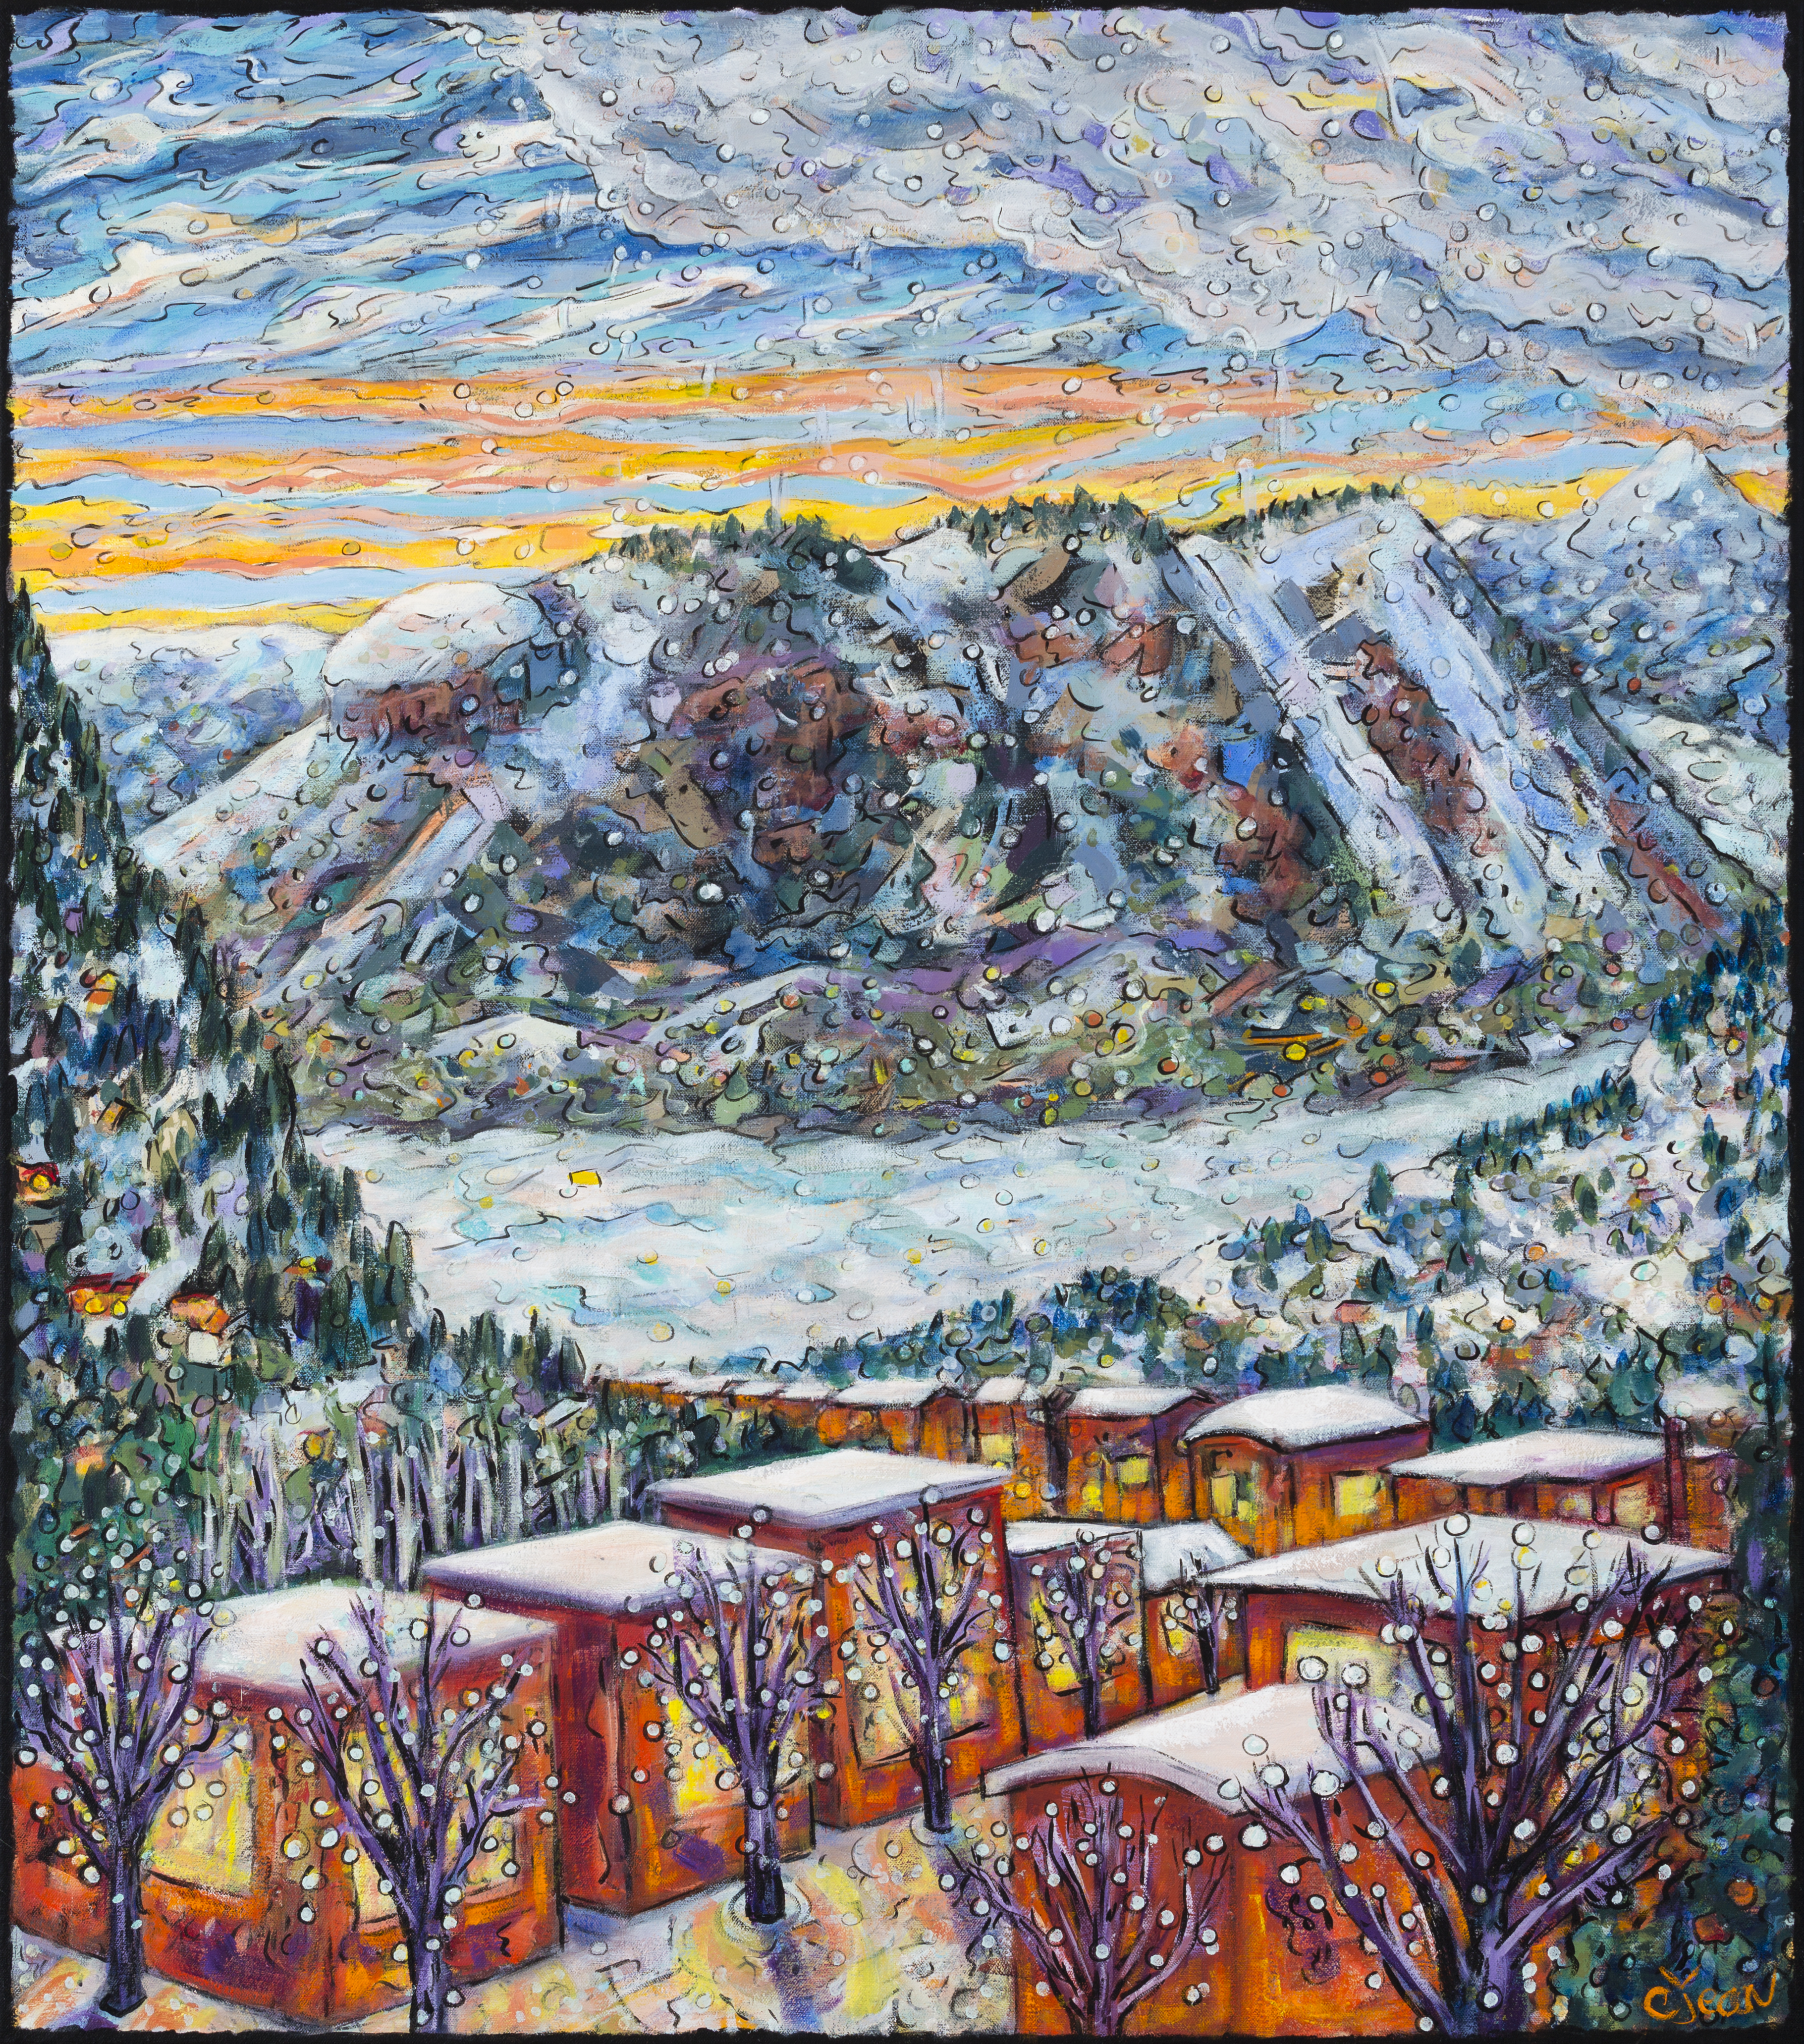 OldTownSunset  Carol Jean a Steamboat Springs Colorado artist featured at Pine Moon Fine art also performace at Sunset Happy Hour